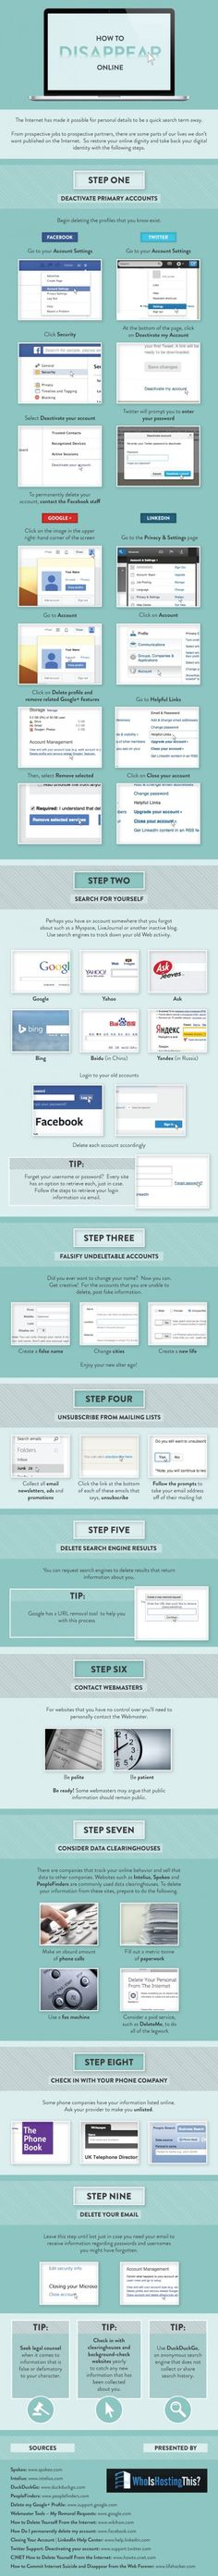 How to Disappear Online [Infographic]